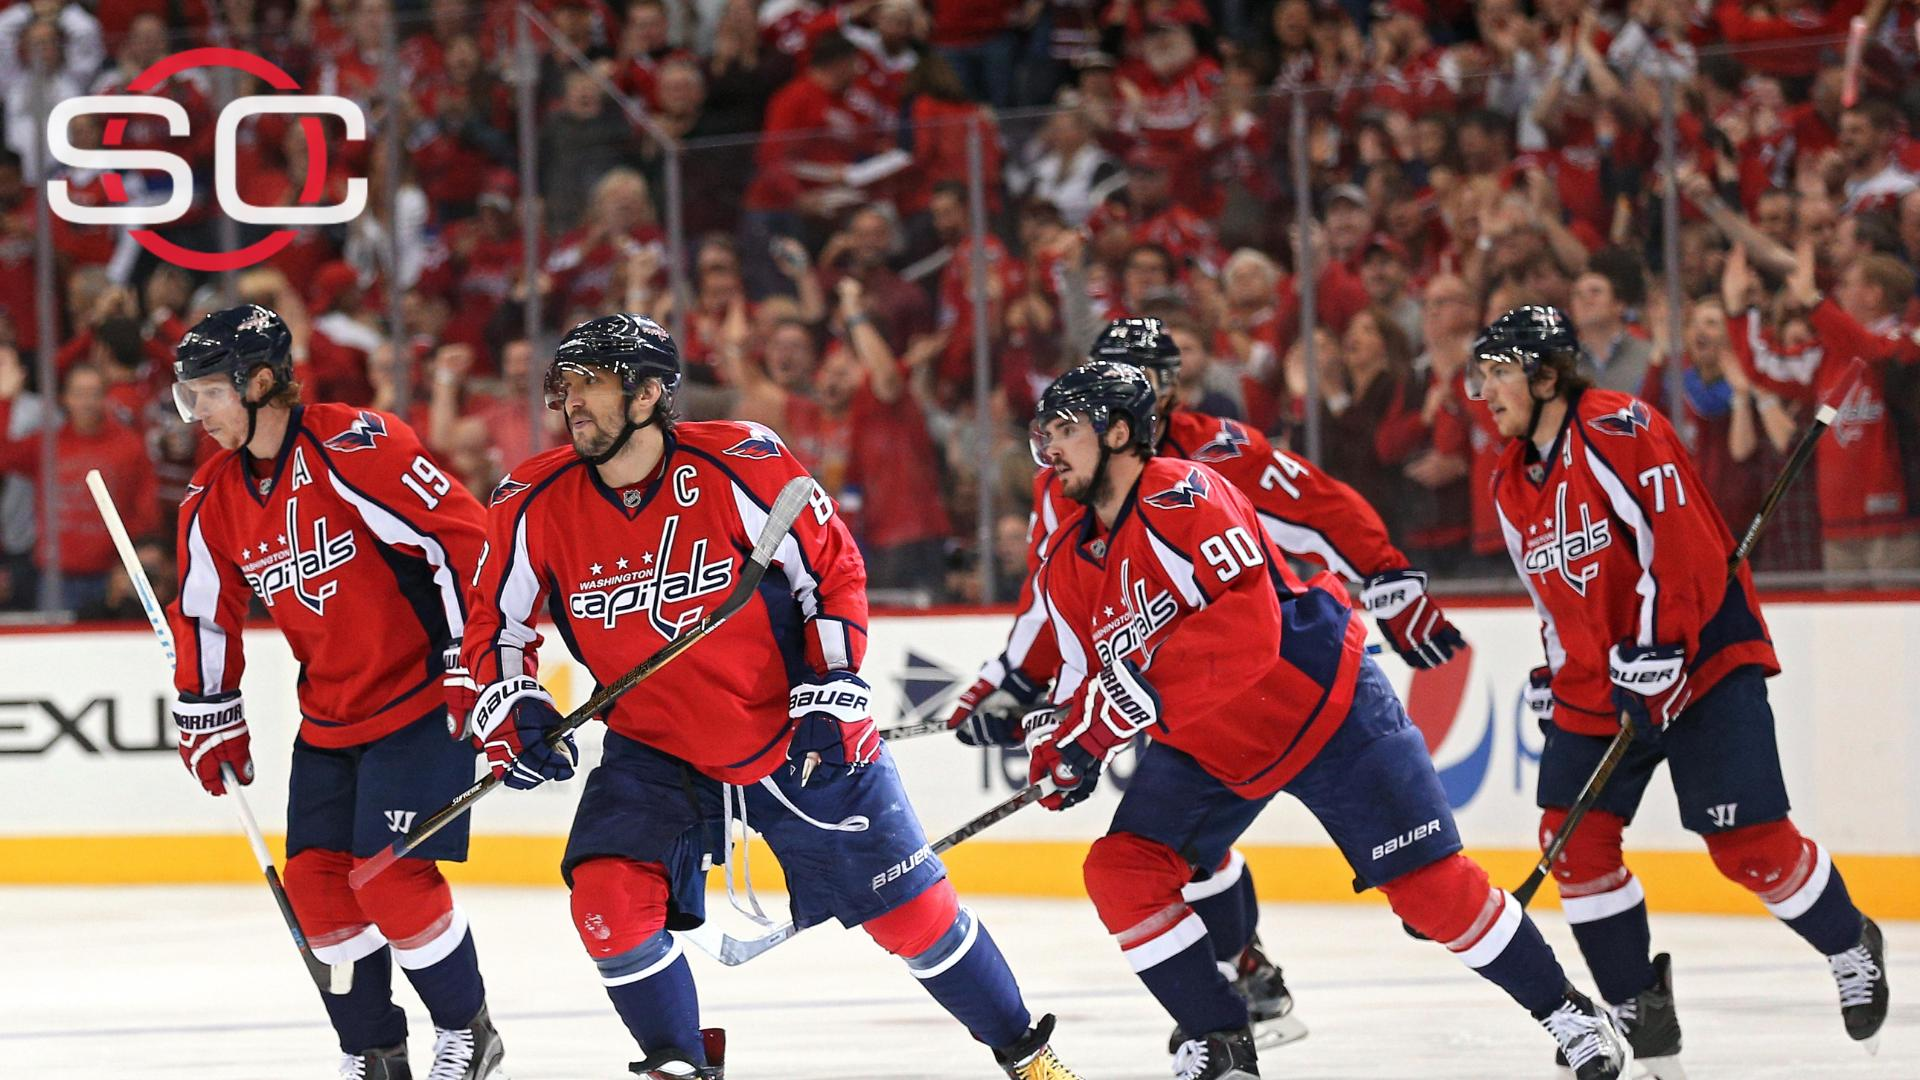 Icy Calm Washington Capitals Bring The Goods And Close In